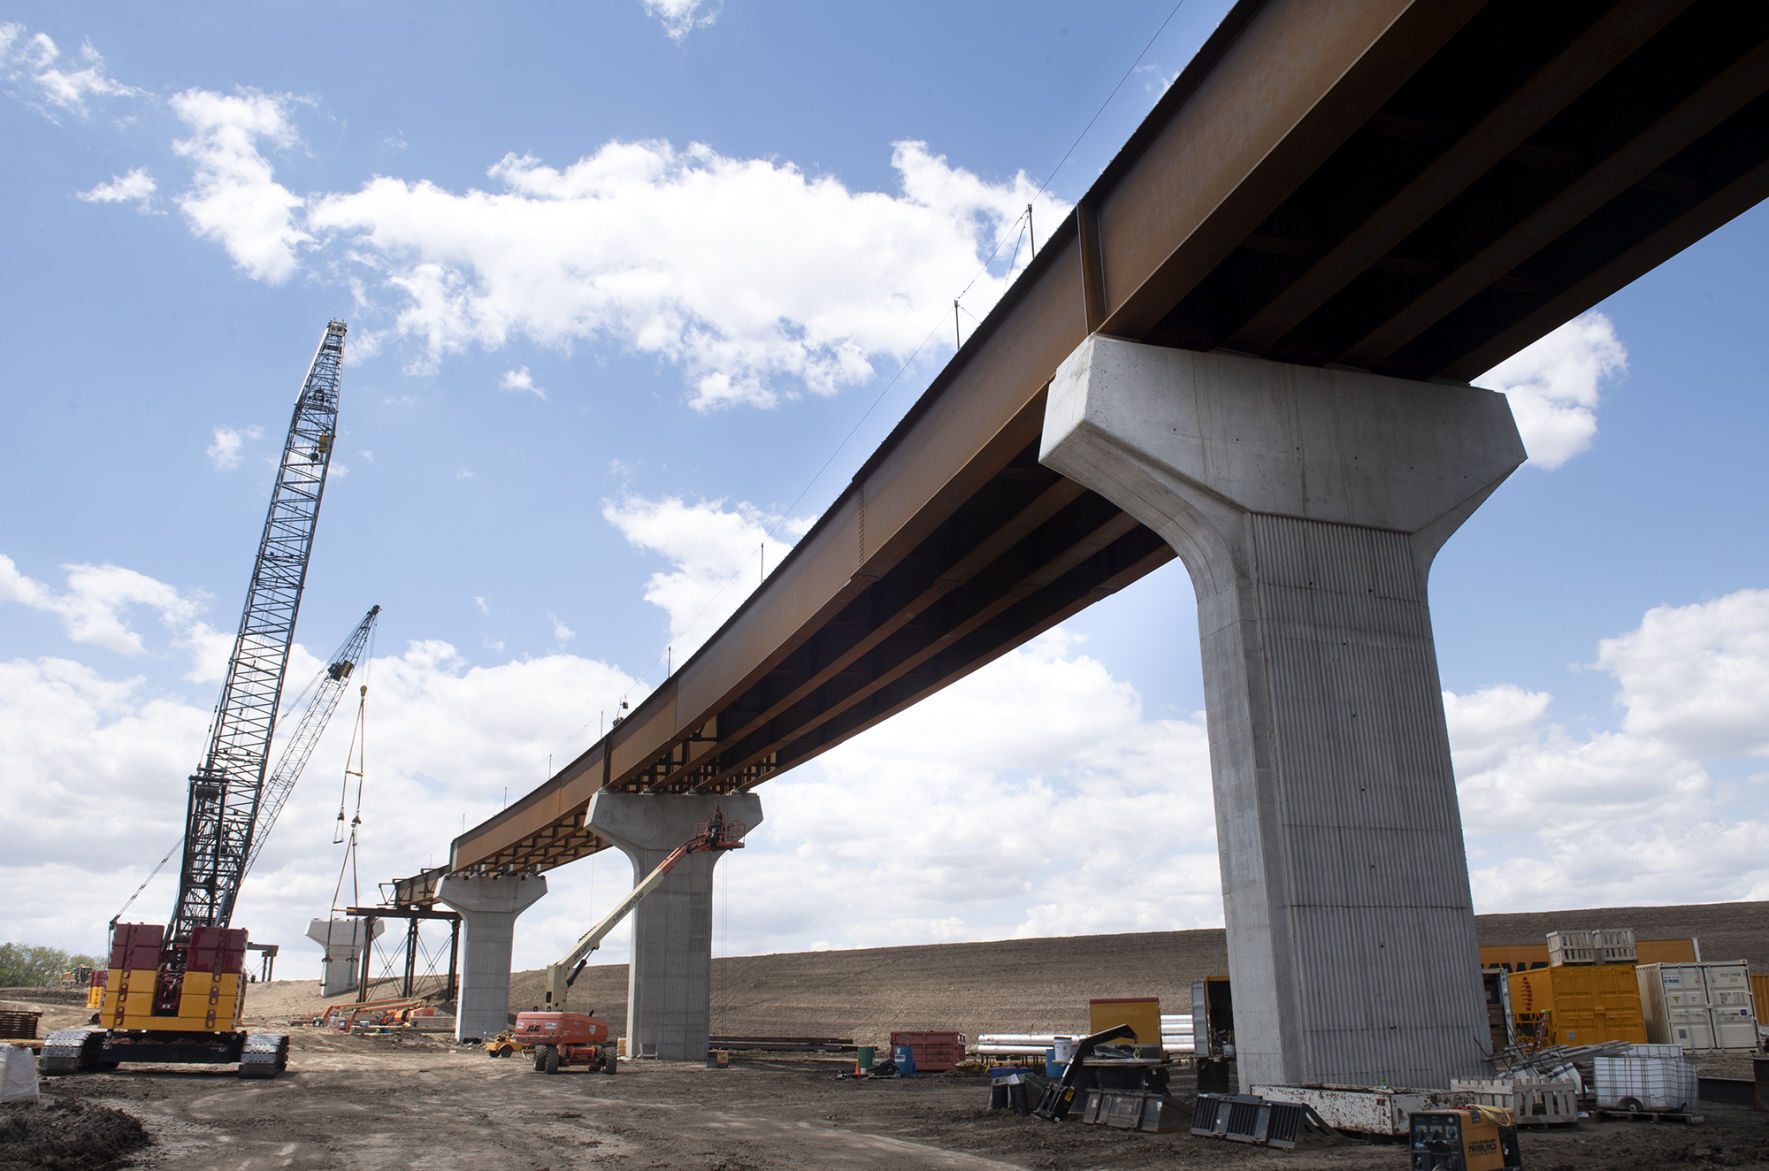 journalstar.com - Peter  Salter - Looming large: On 11-mile construction site, bridge at end of South Beltway rises